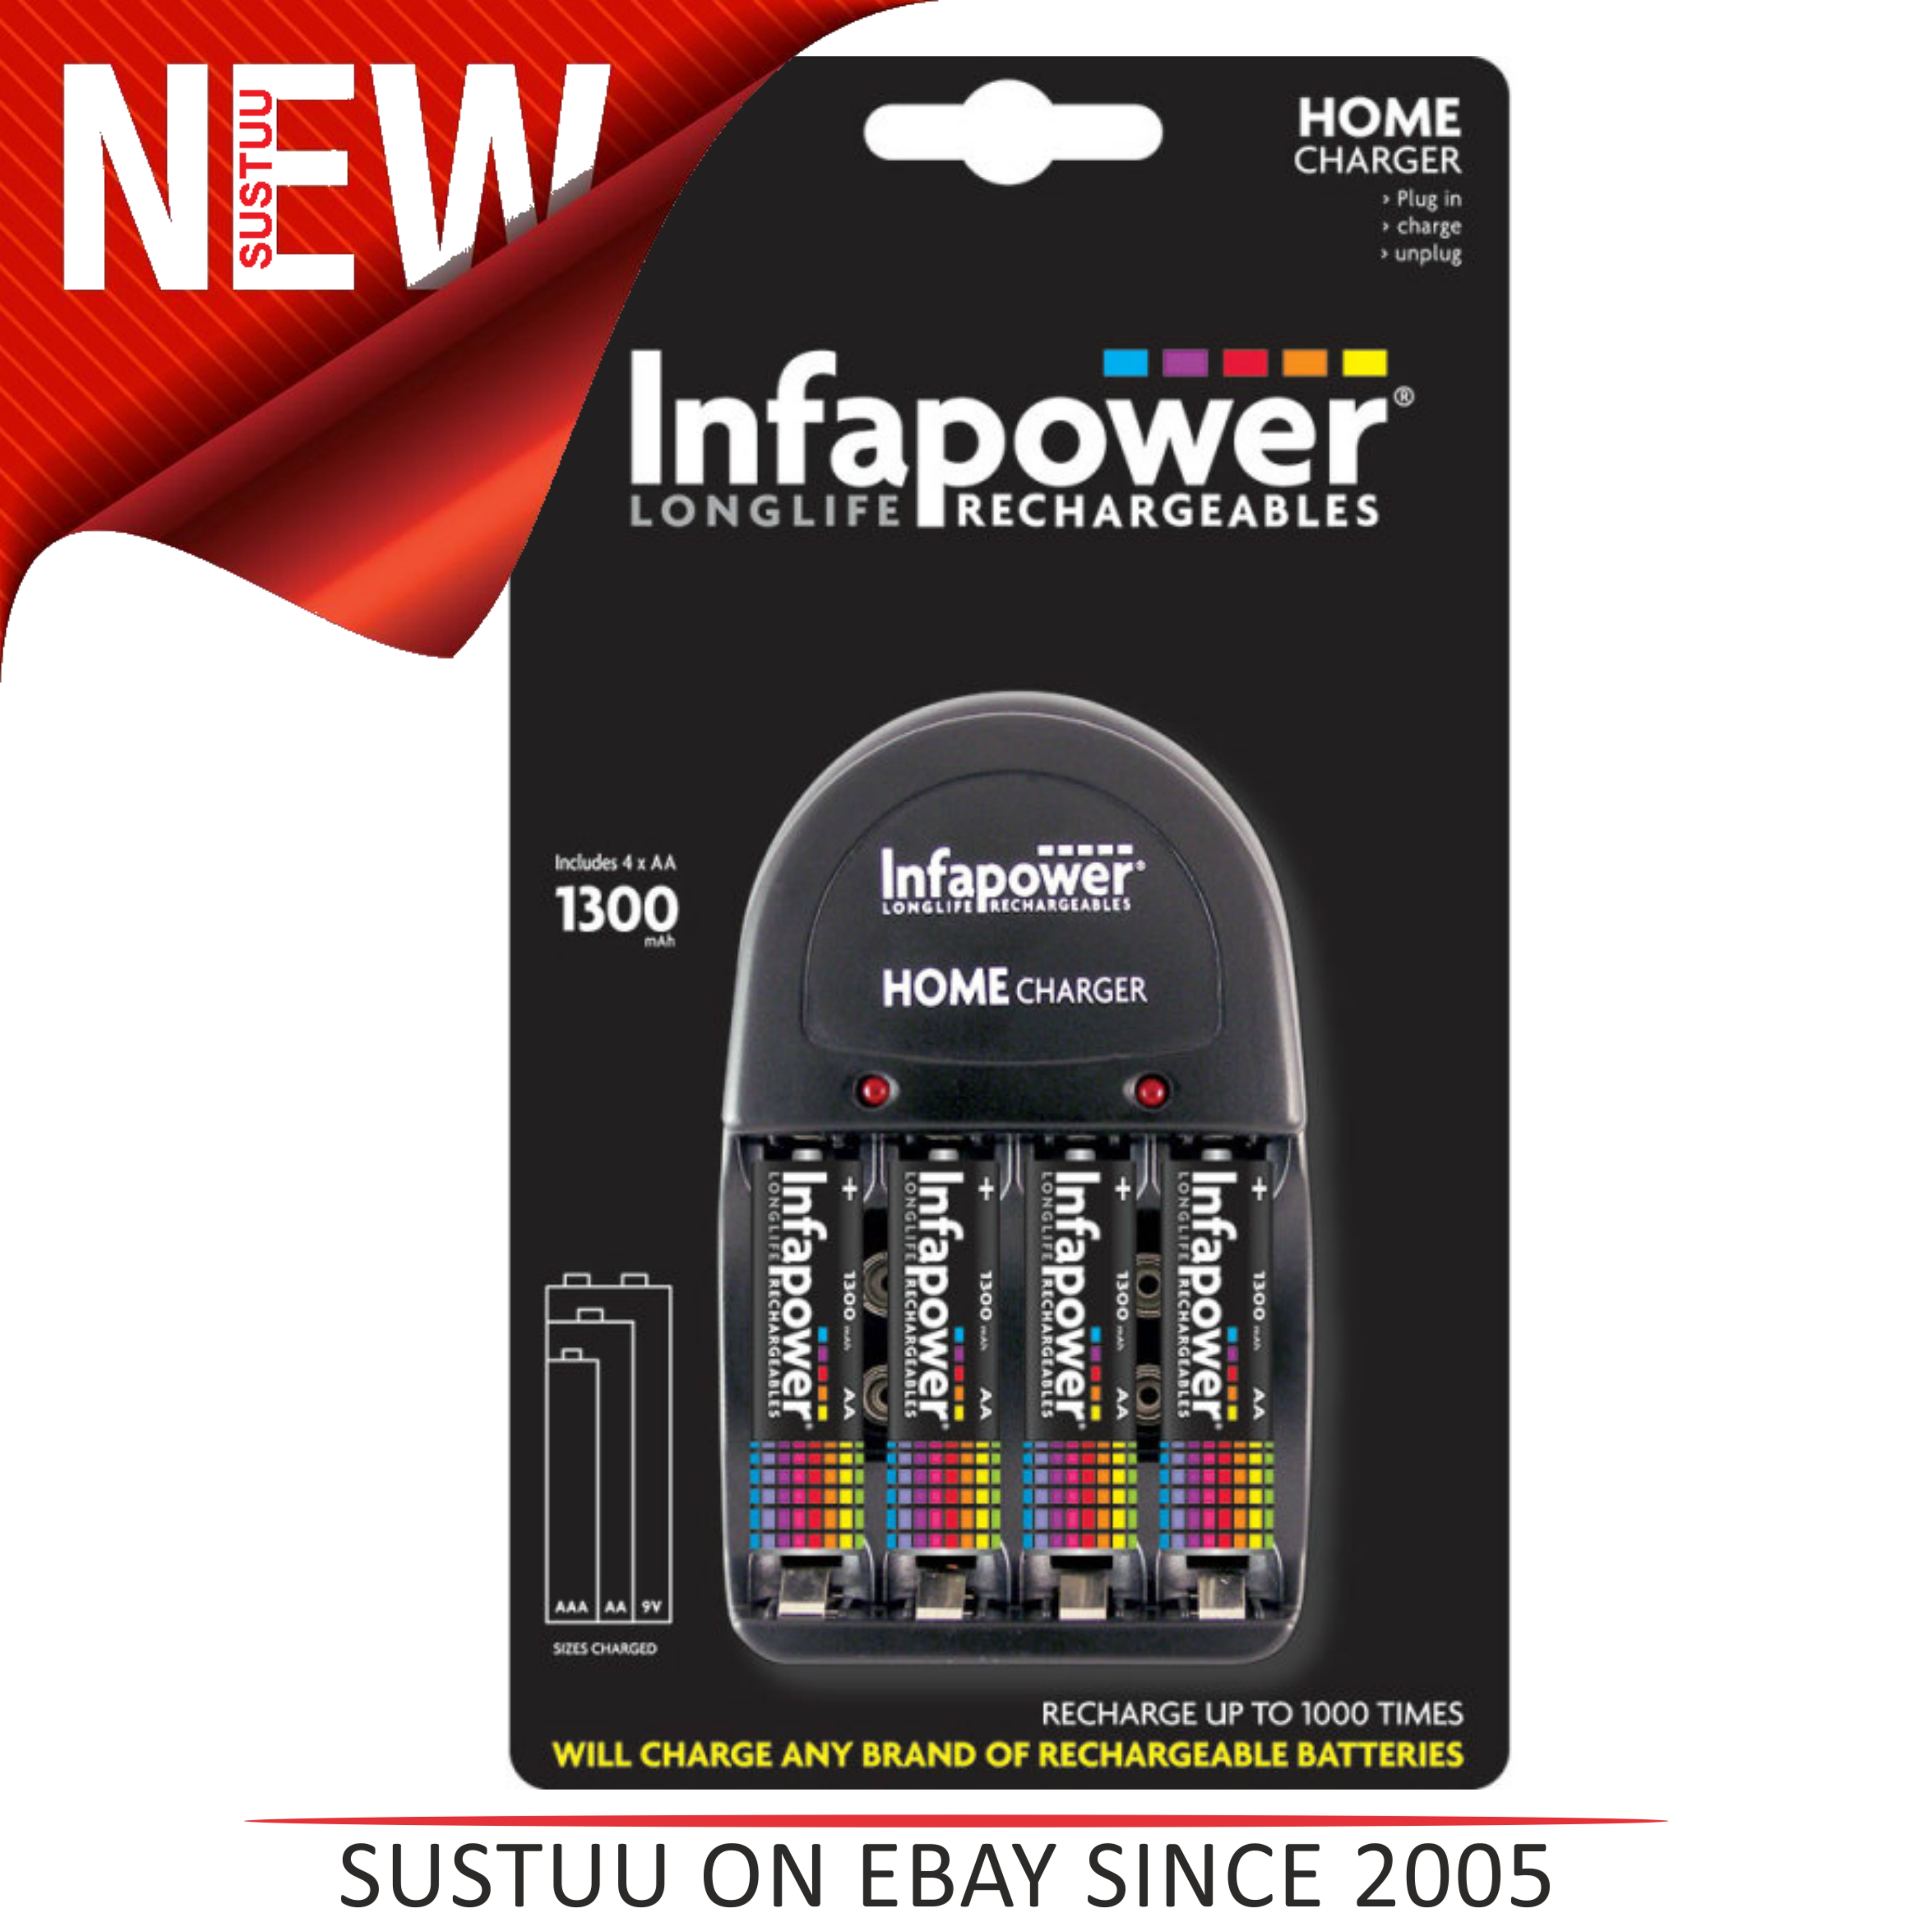 Infapower C001 Home Charger with 4 x AA 1300mAh Ni-Mh Rechargeable Batteries